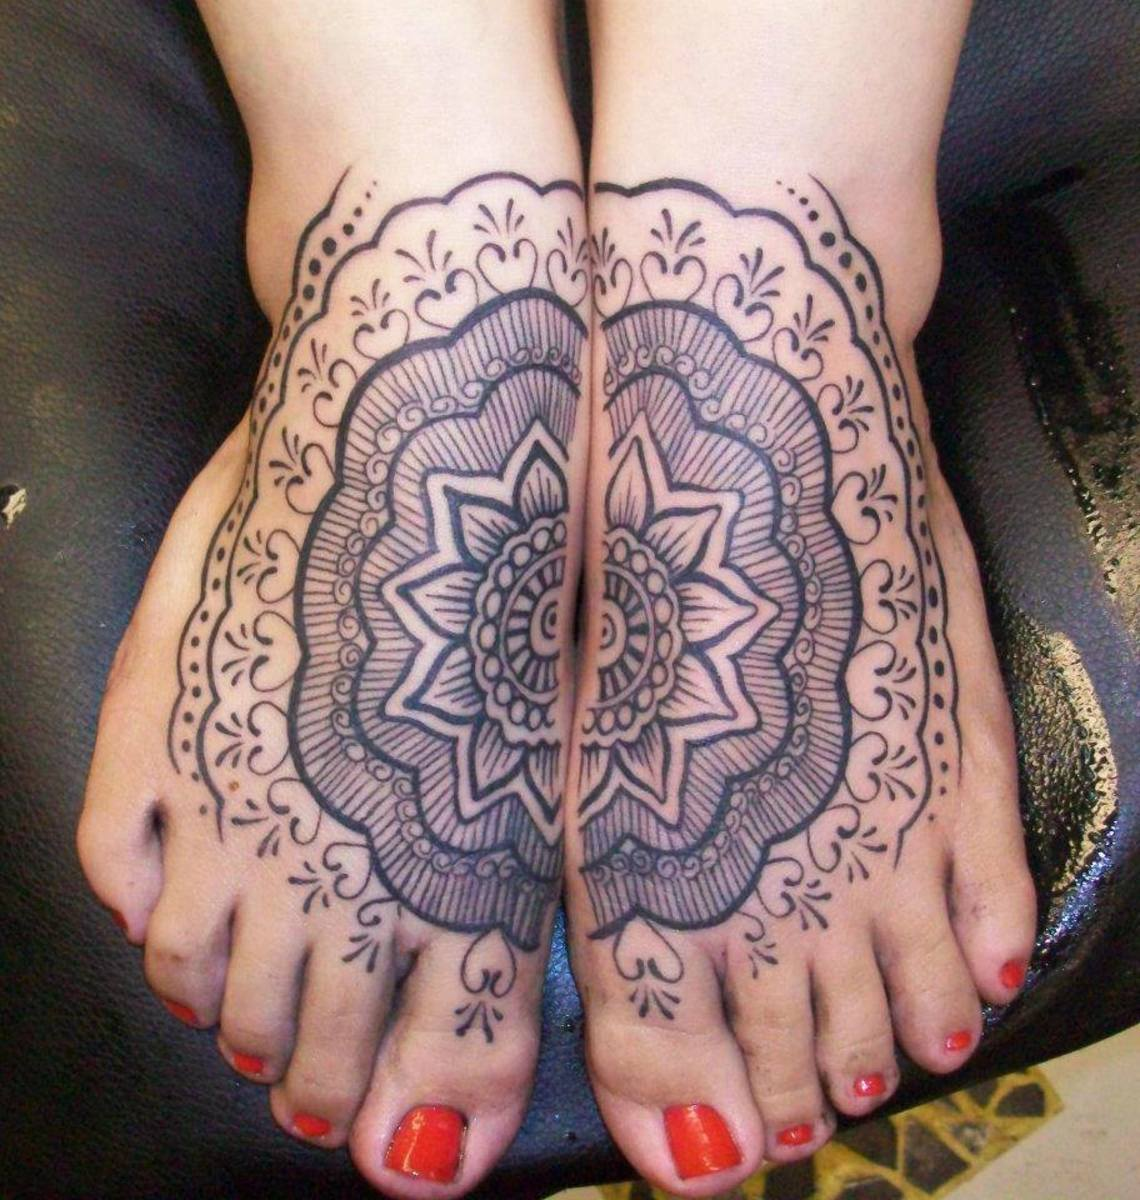 Lovely design where two feet meet to make a full design.